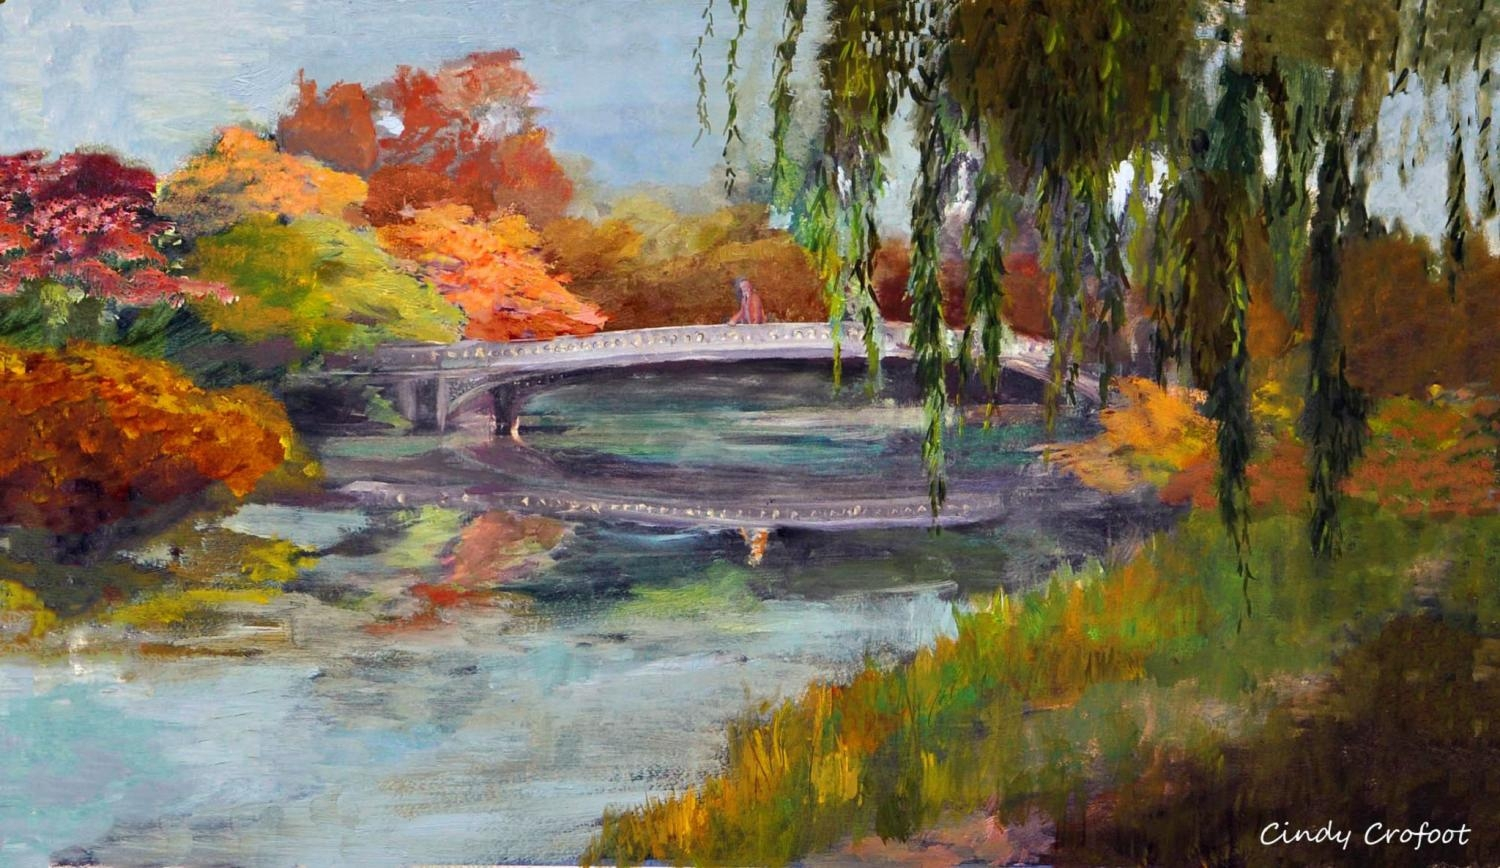 """Central Park's Bow Bridge in Autumn 1894"" by Cindy Crofoot"